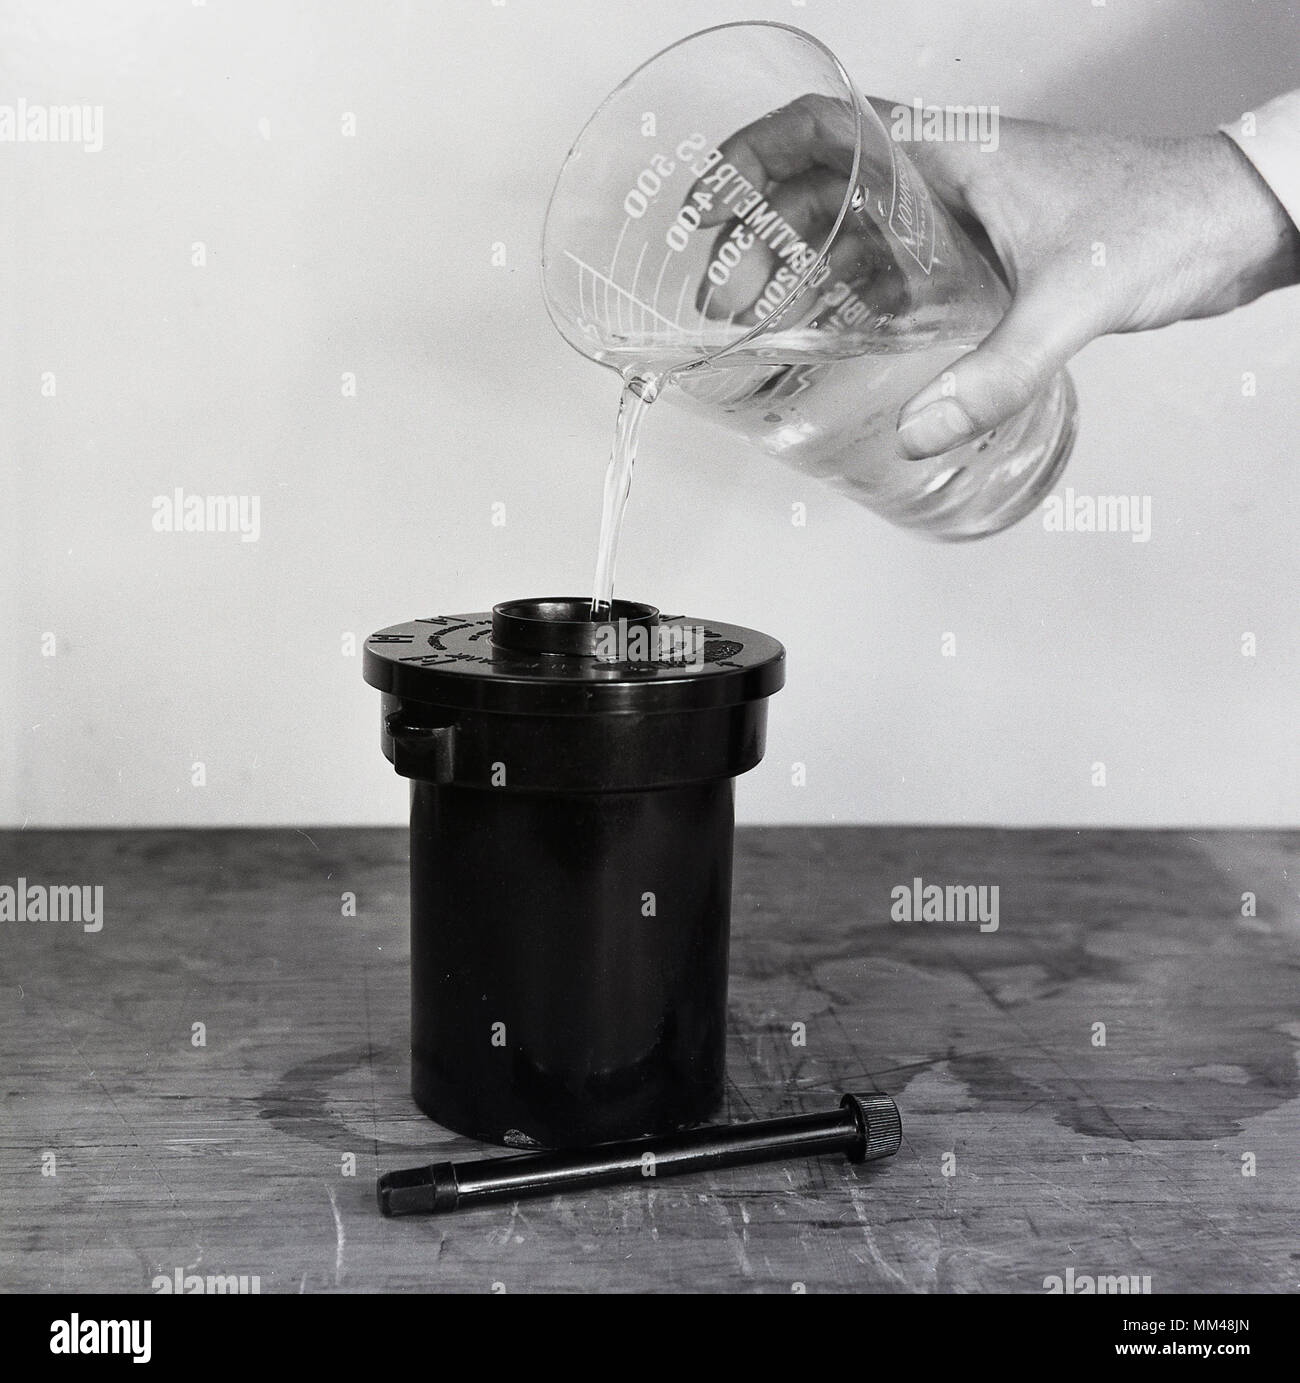 1950s, historical picture showing the chemical solution being added to a container to develop the black and white photographic film. - Stock Image